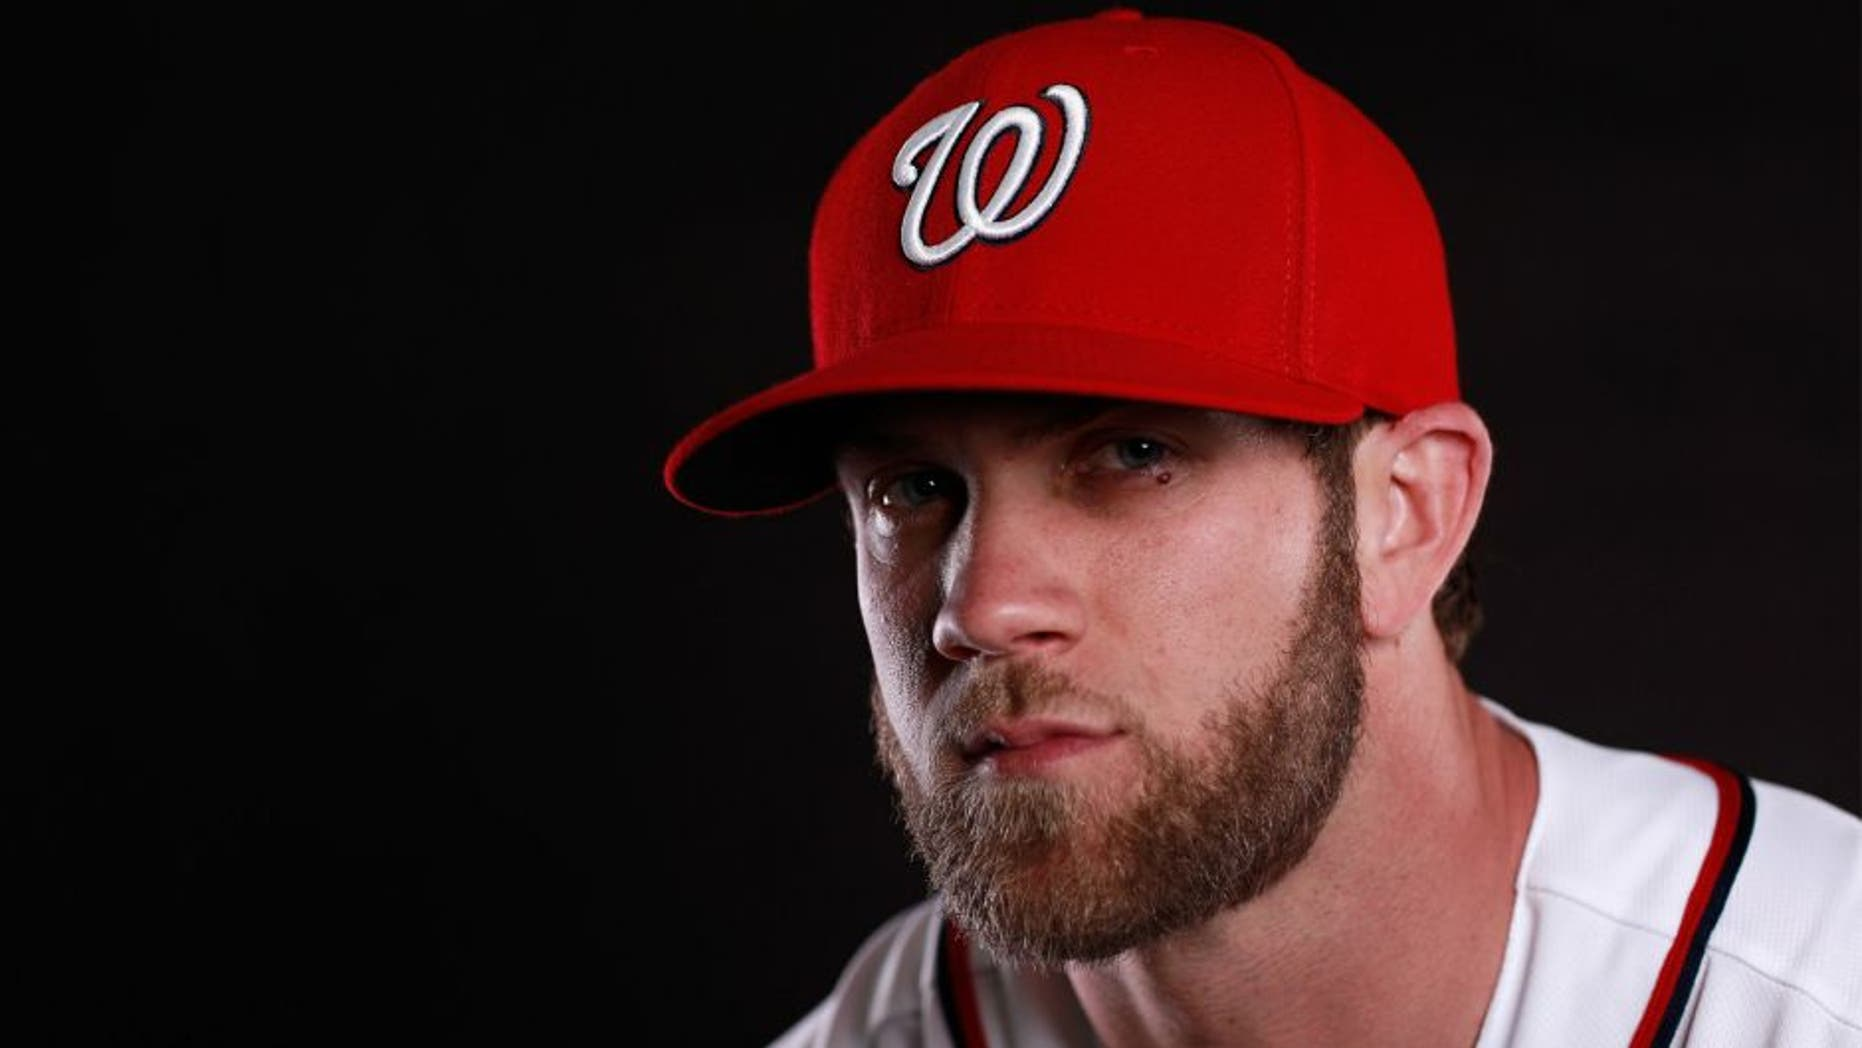 VIERA, FL - FEBRUARY 28: Bryce Harper #34 of the Washington Nationals poses for a portrait at Spring Training photo day at Space Coast Stadium on February 28, 2016 in Viera, Florida. (Photo by Chris Trotman/Getty Images)